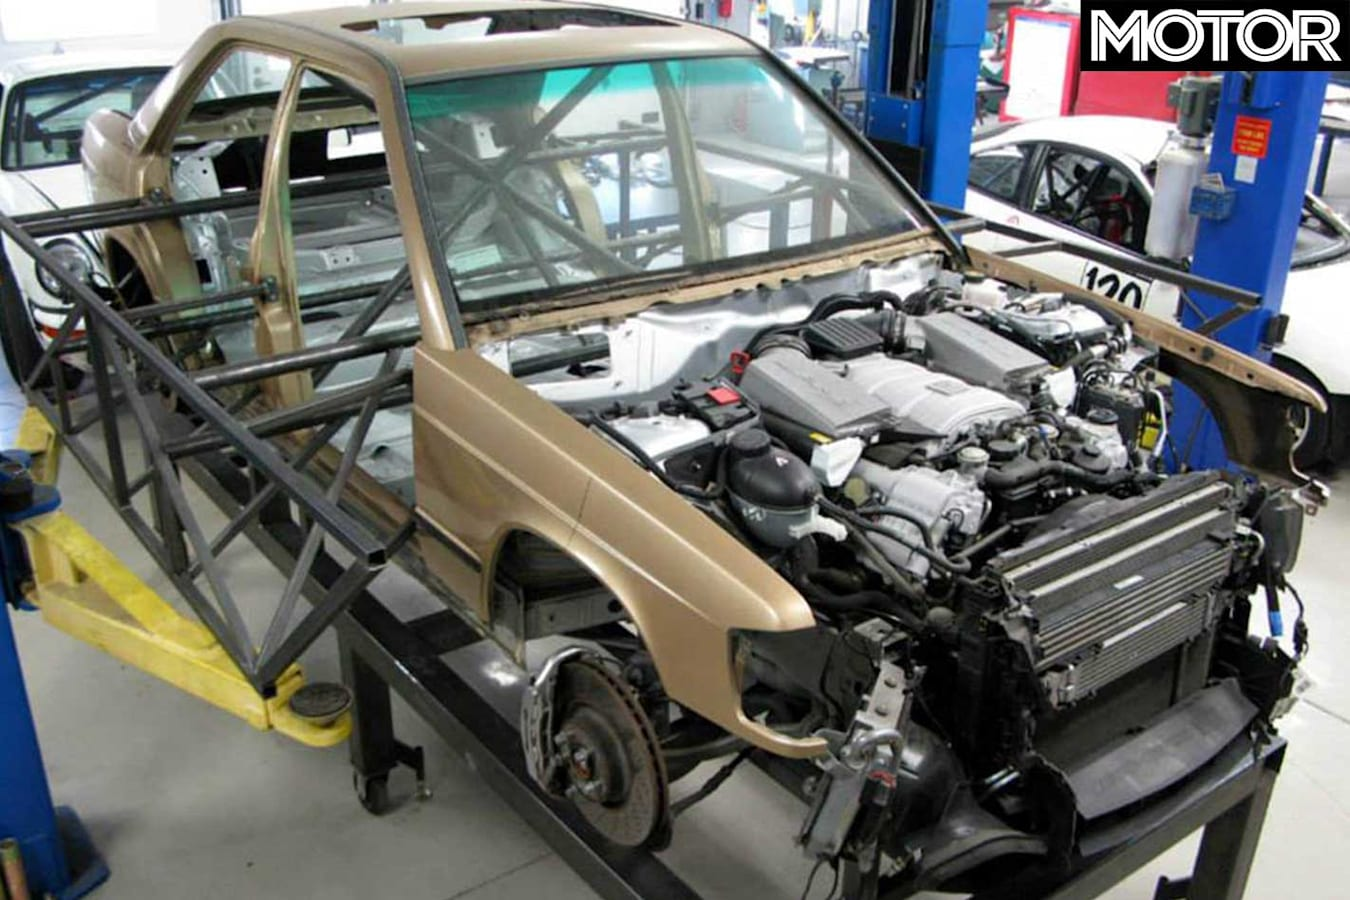 2008 Mercedes Benz C 63 AMG Chassis 190 E Body Fitted Jpg